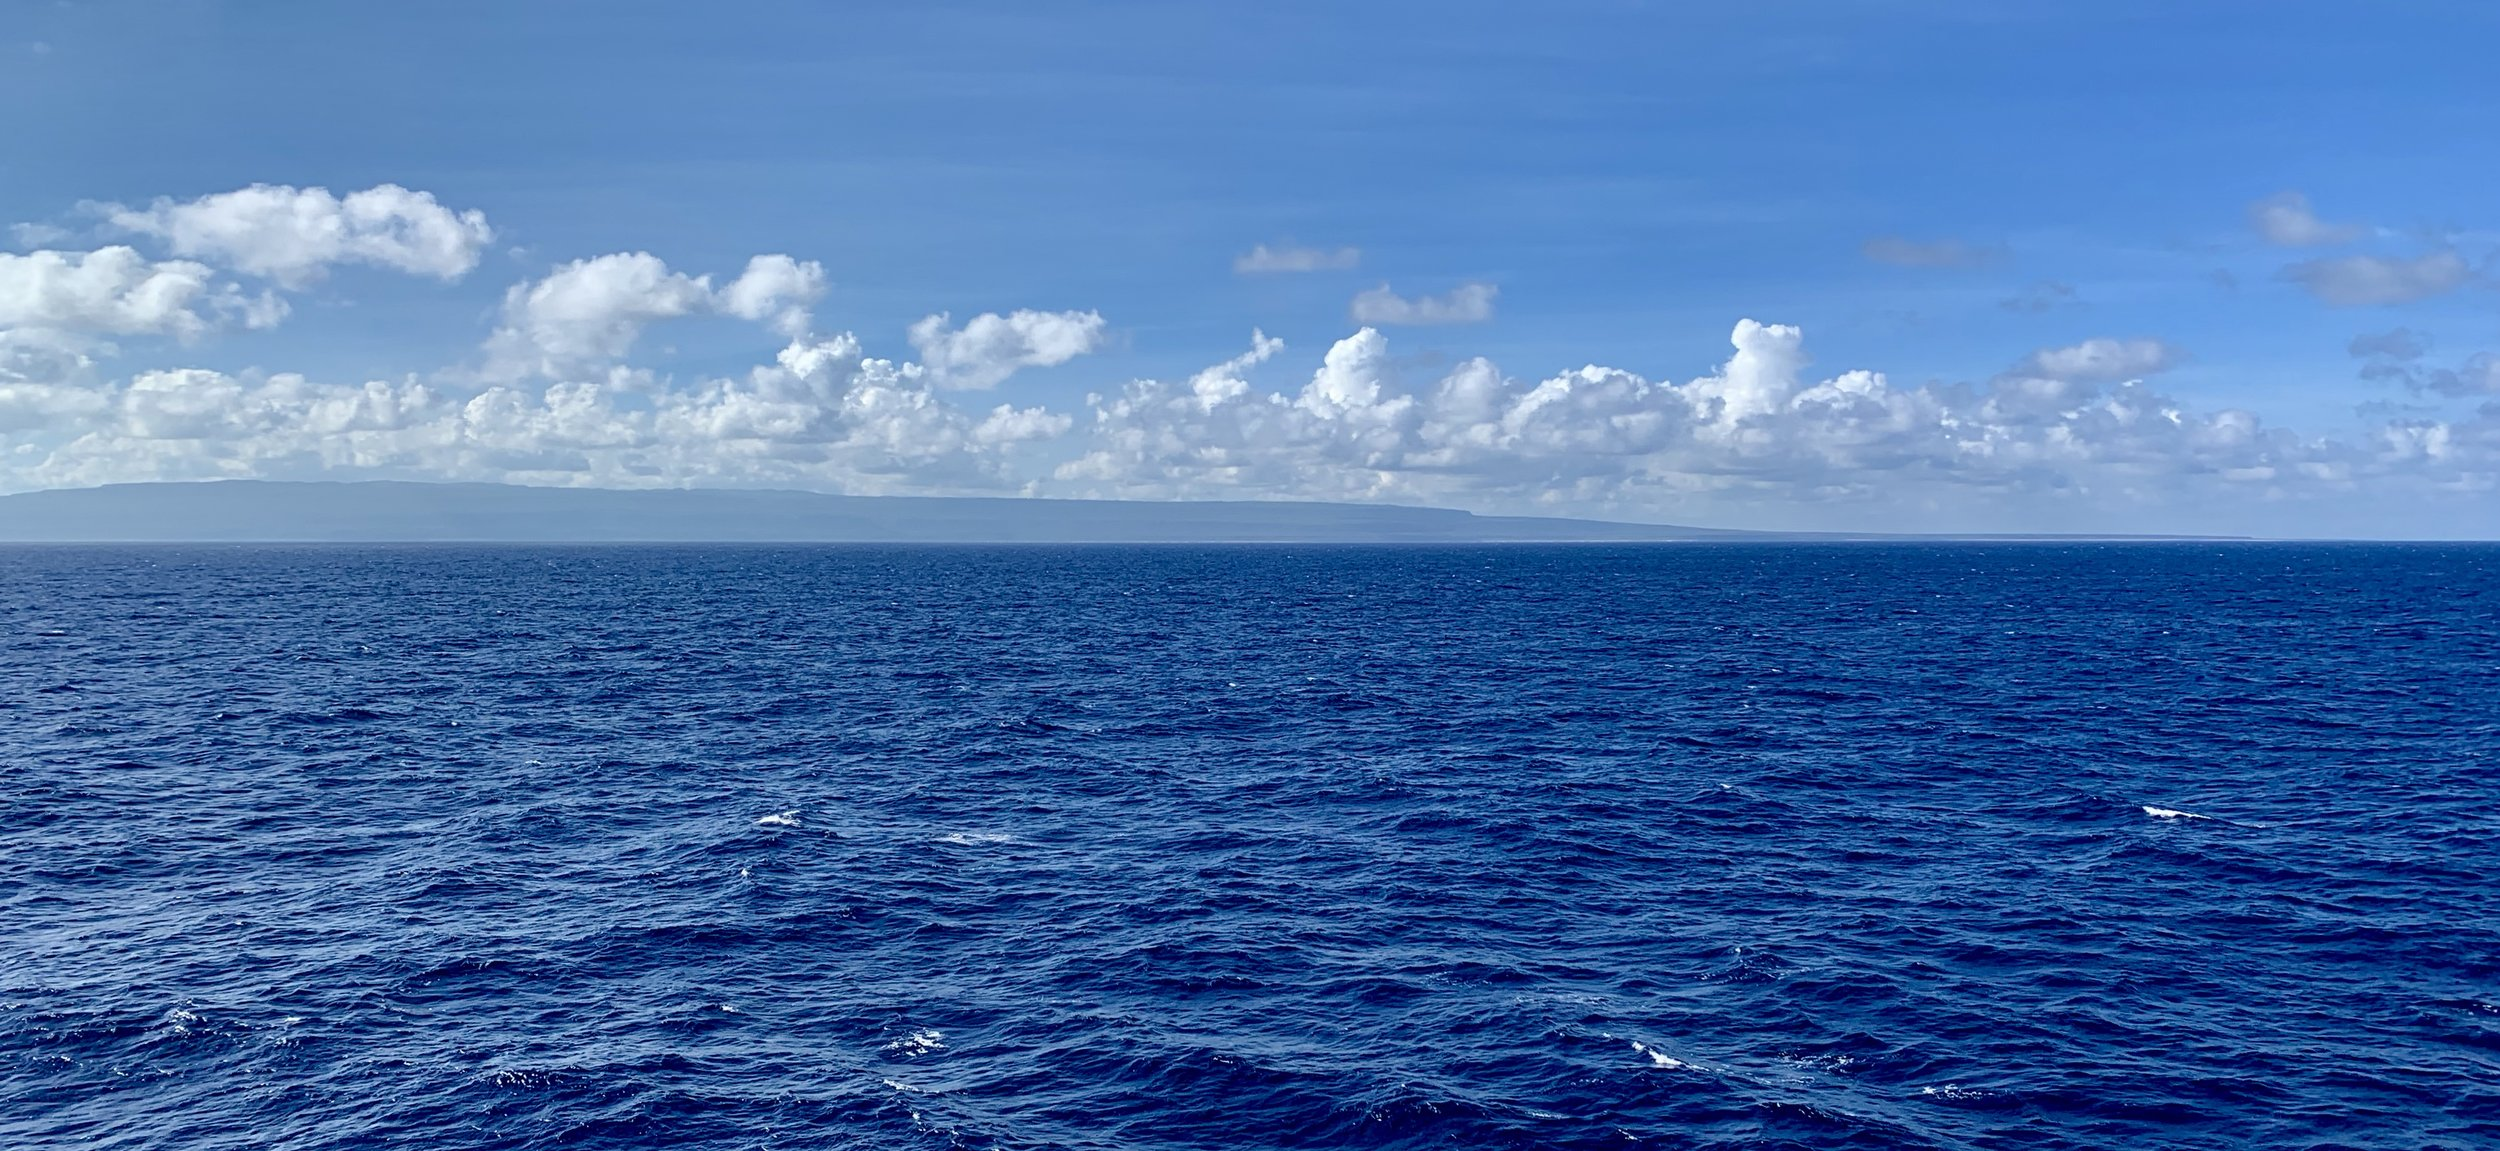 The view at sea.